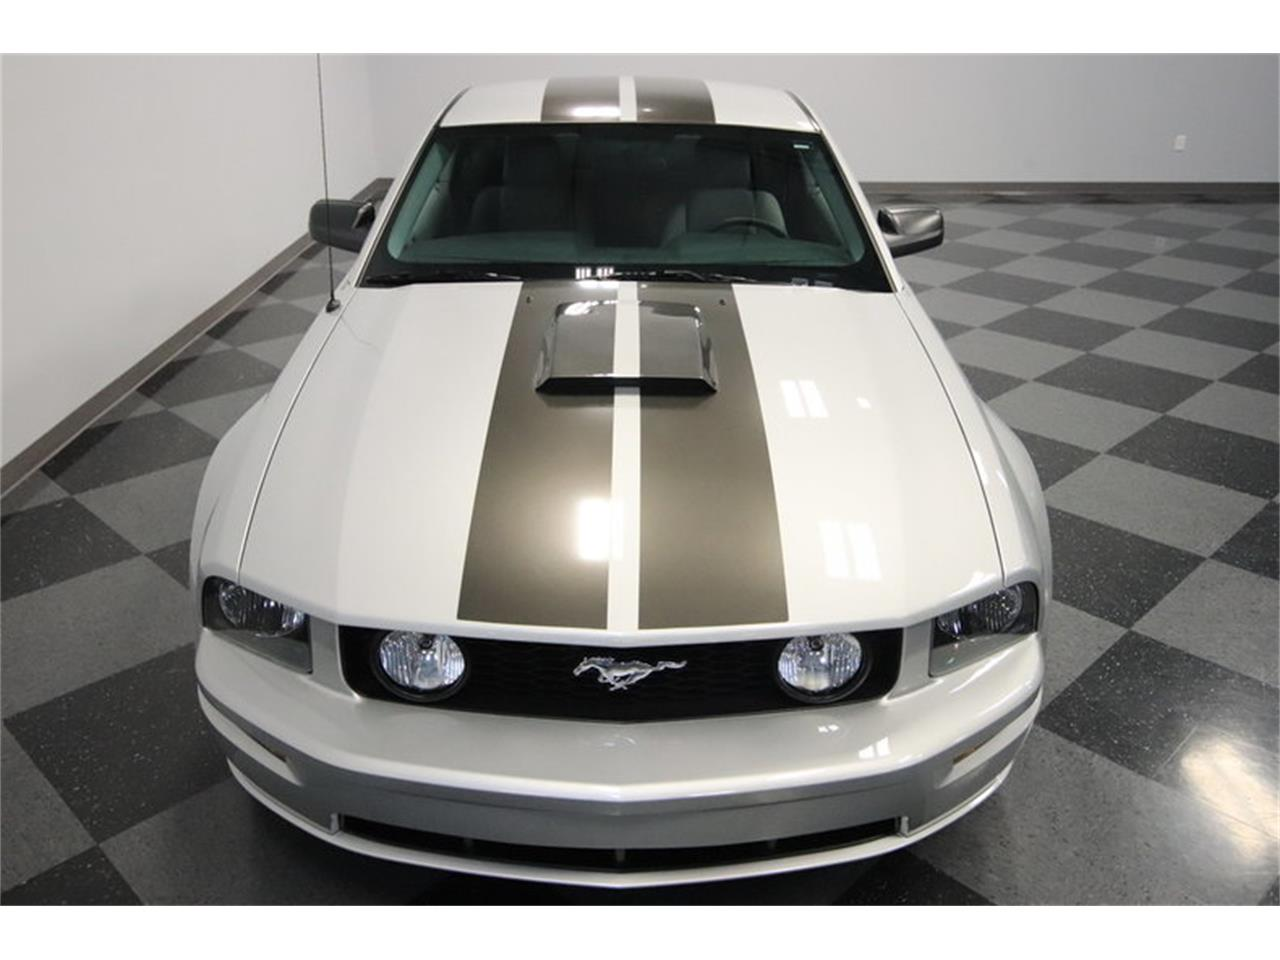 Large Picture of 2005 Ford Mustang GT located in Arizona - $16,995.00 Offered by Streetside Classics - Phoenix - MOAI